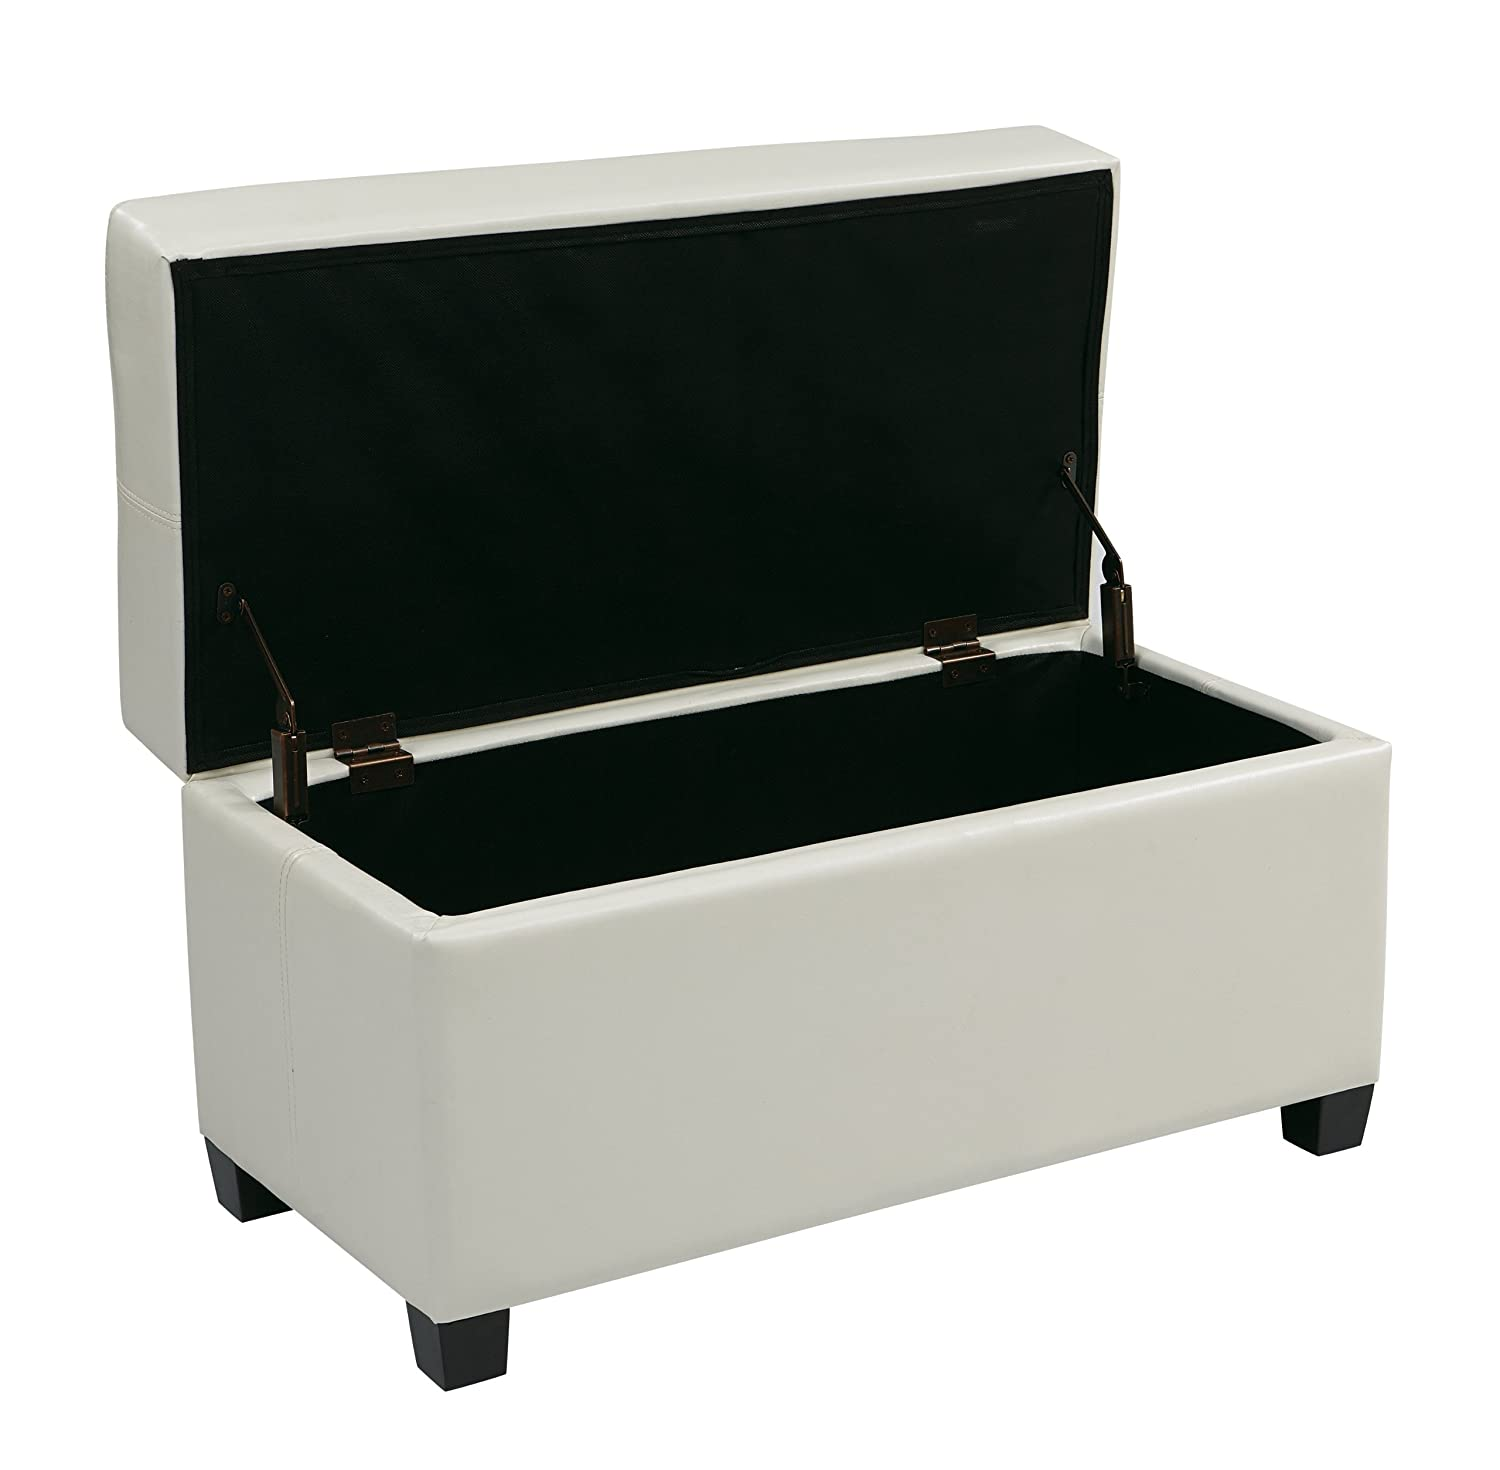 Amazon.com: Office Star Metro Vinyl Storage Ottoman with Espresso Finish  Legs, White: Kitchen & Dining - Amazon.com: Office Star Metro Vinyl Storage Ottoman With Espresso